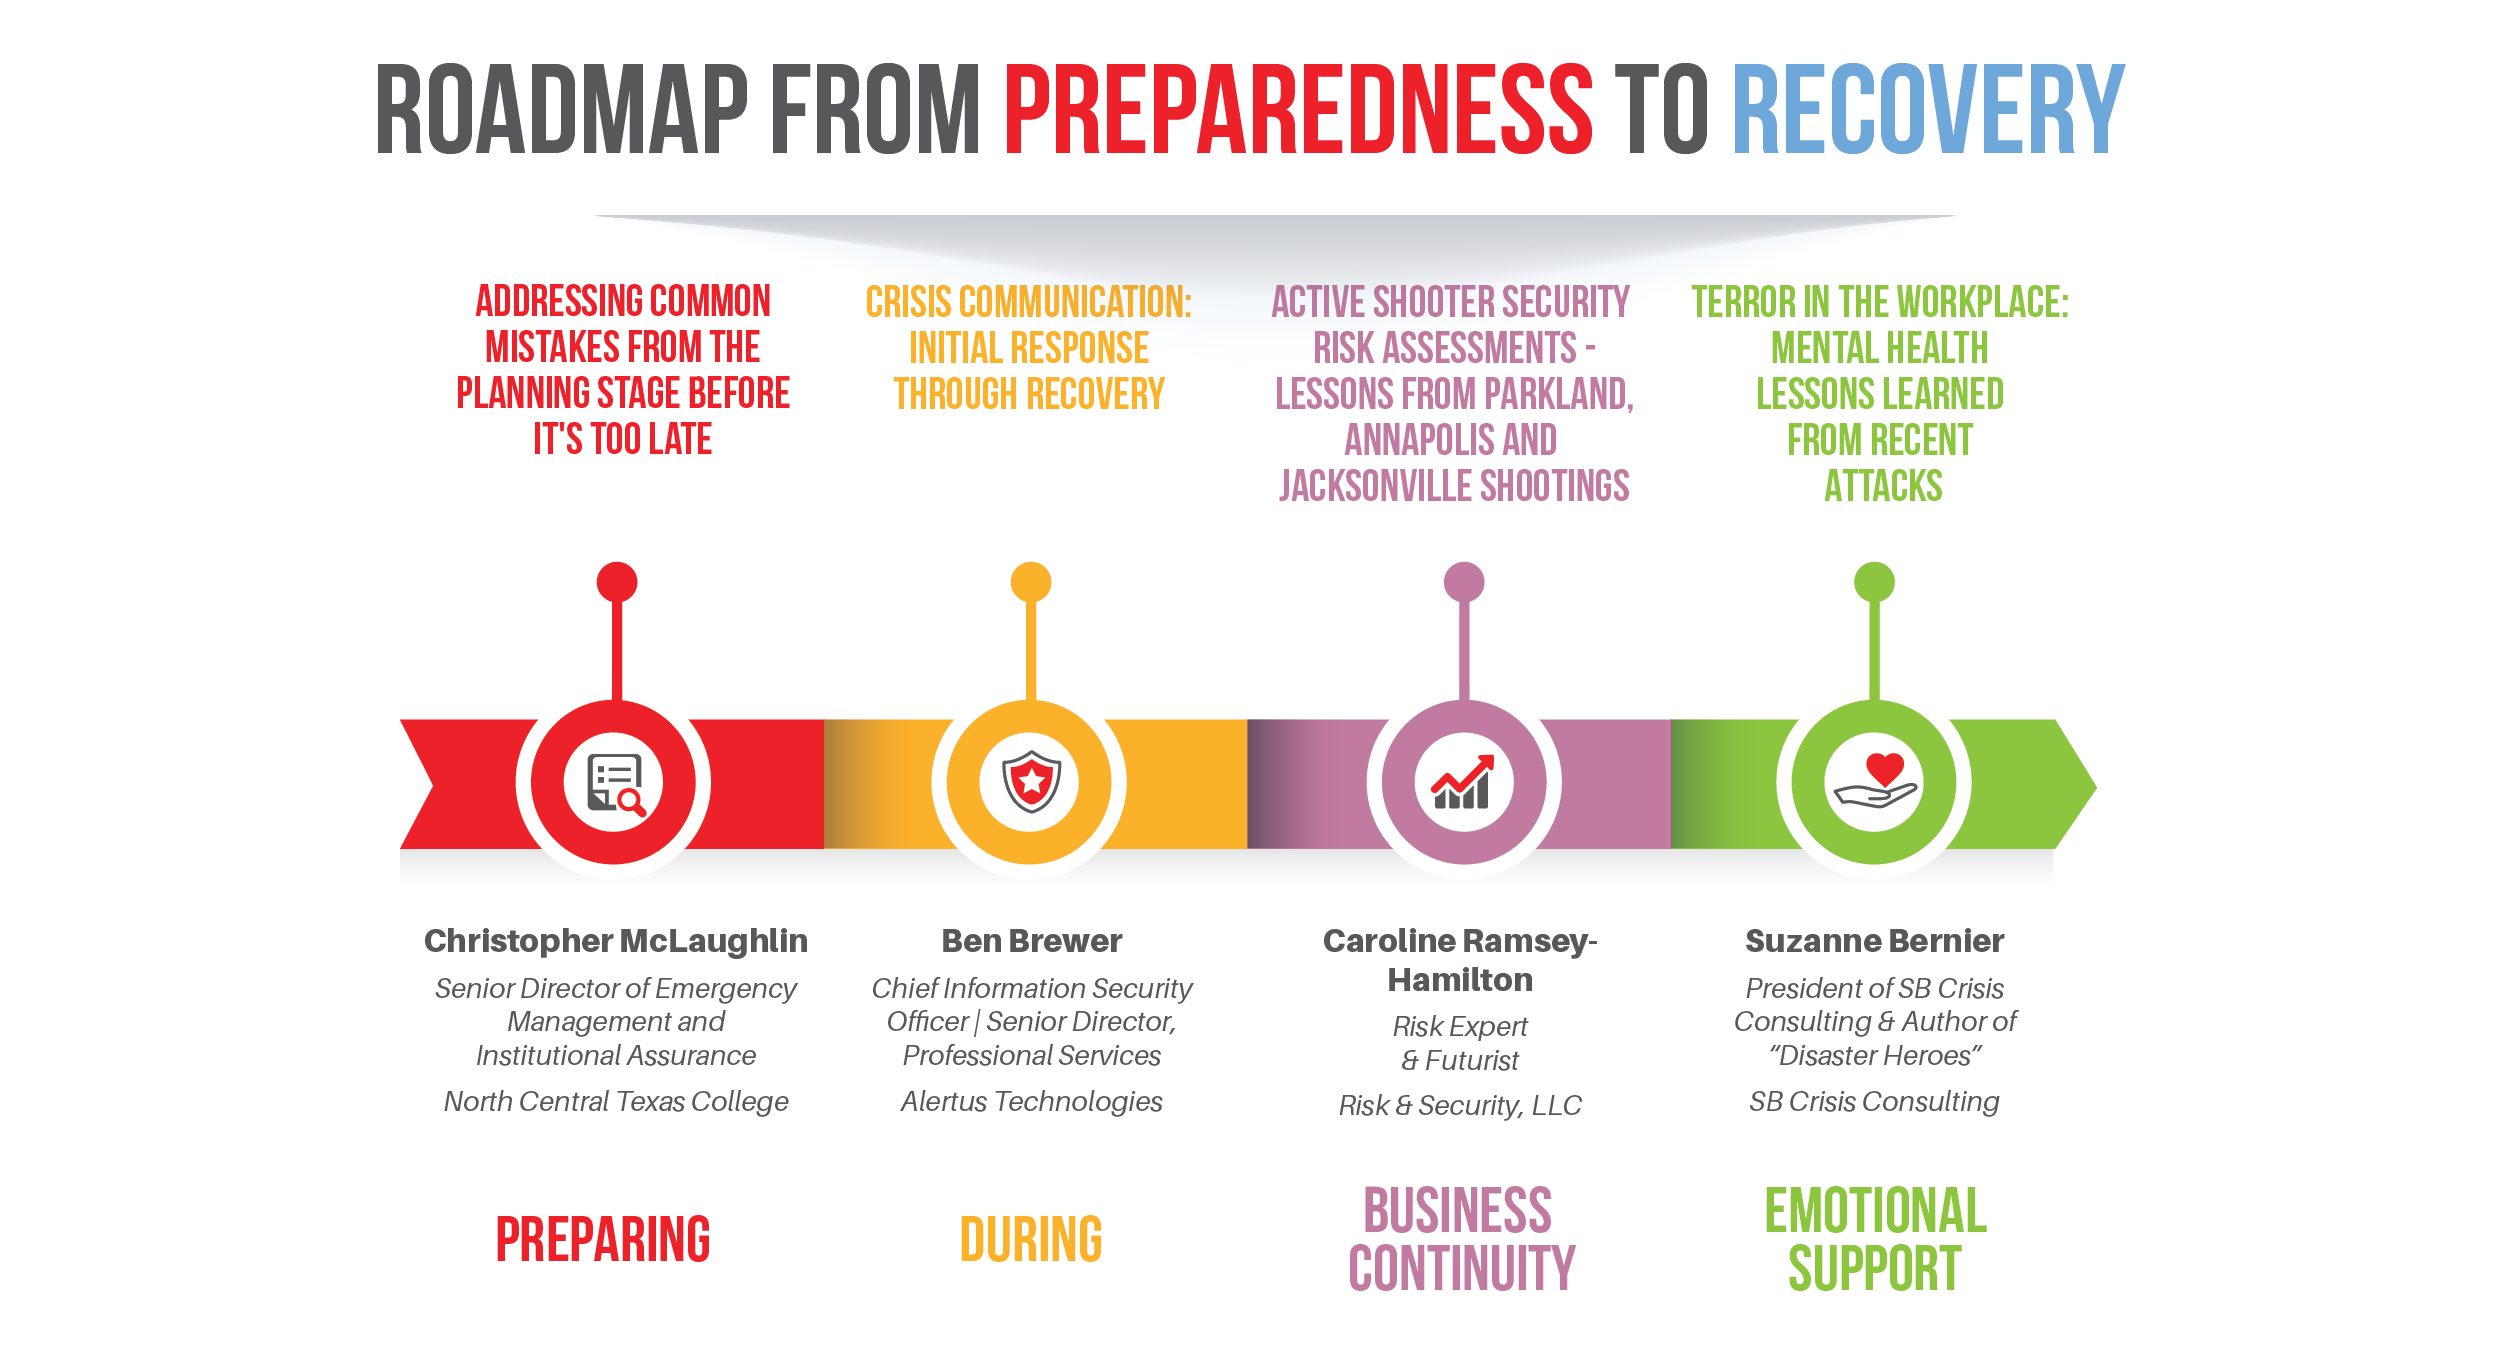 Roadmap from emergency preparedness to emergency recovery.